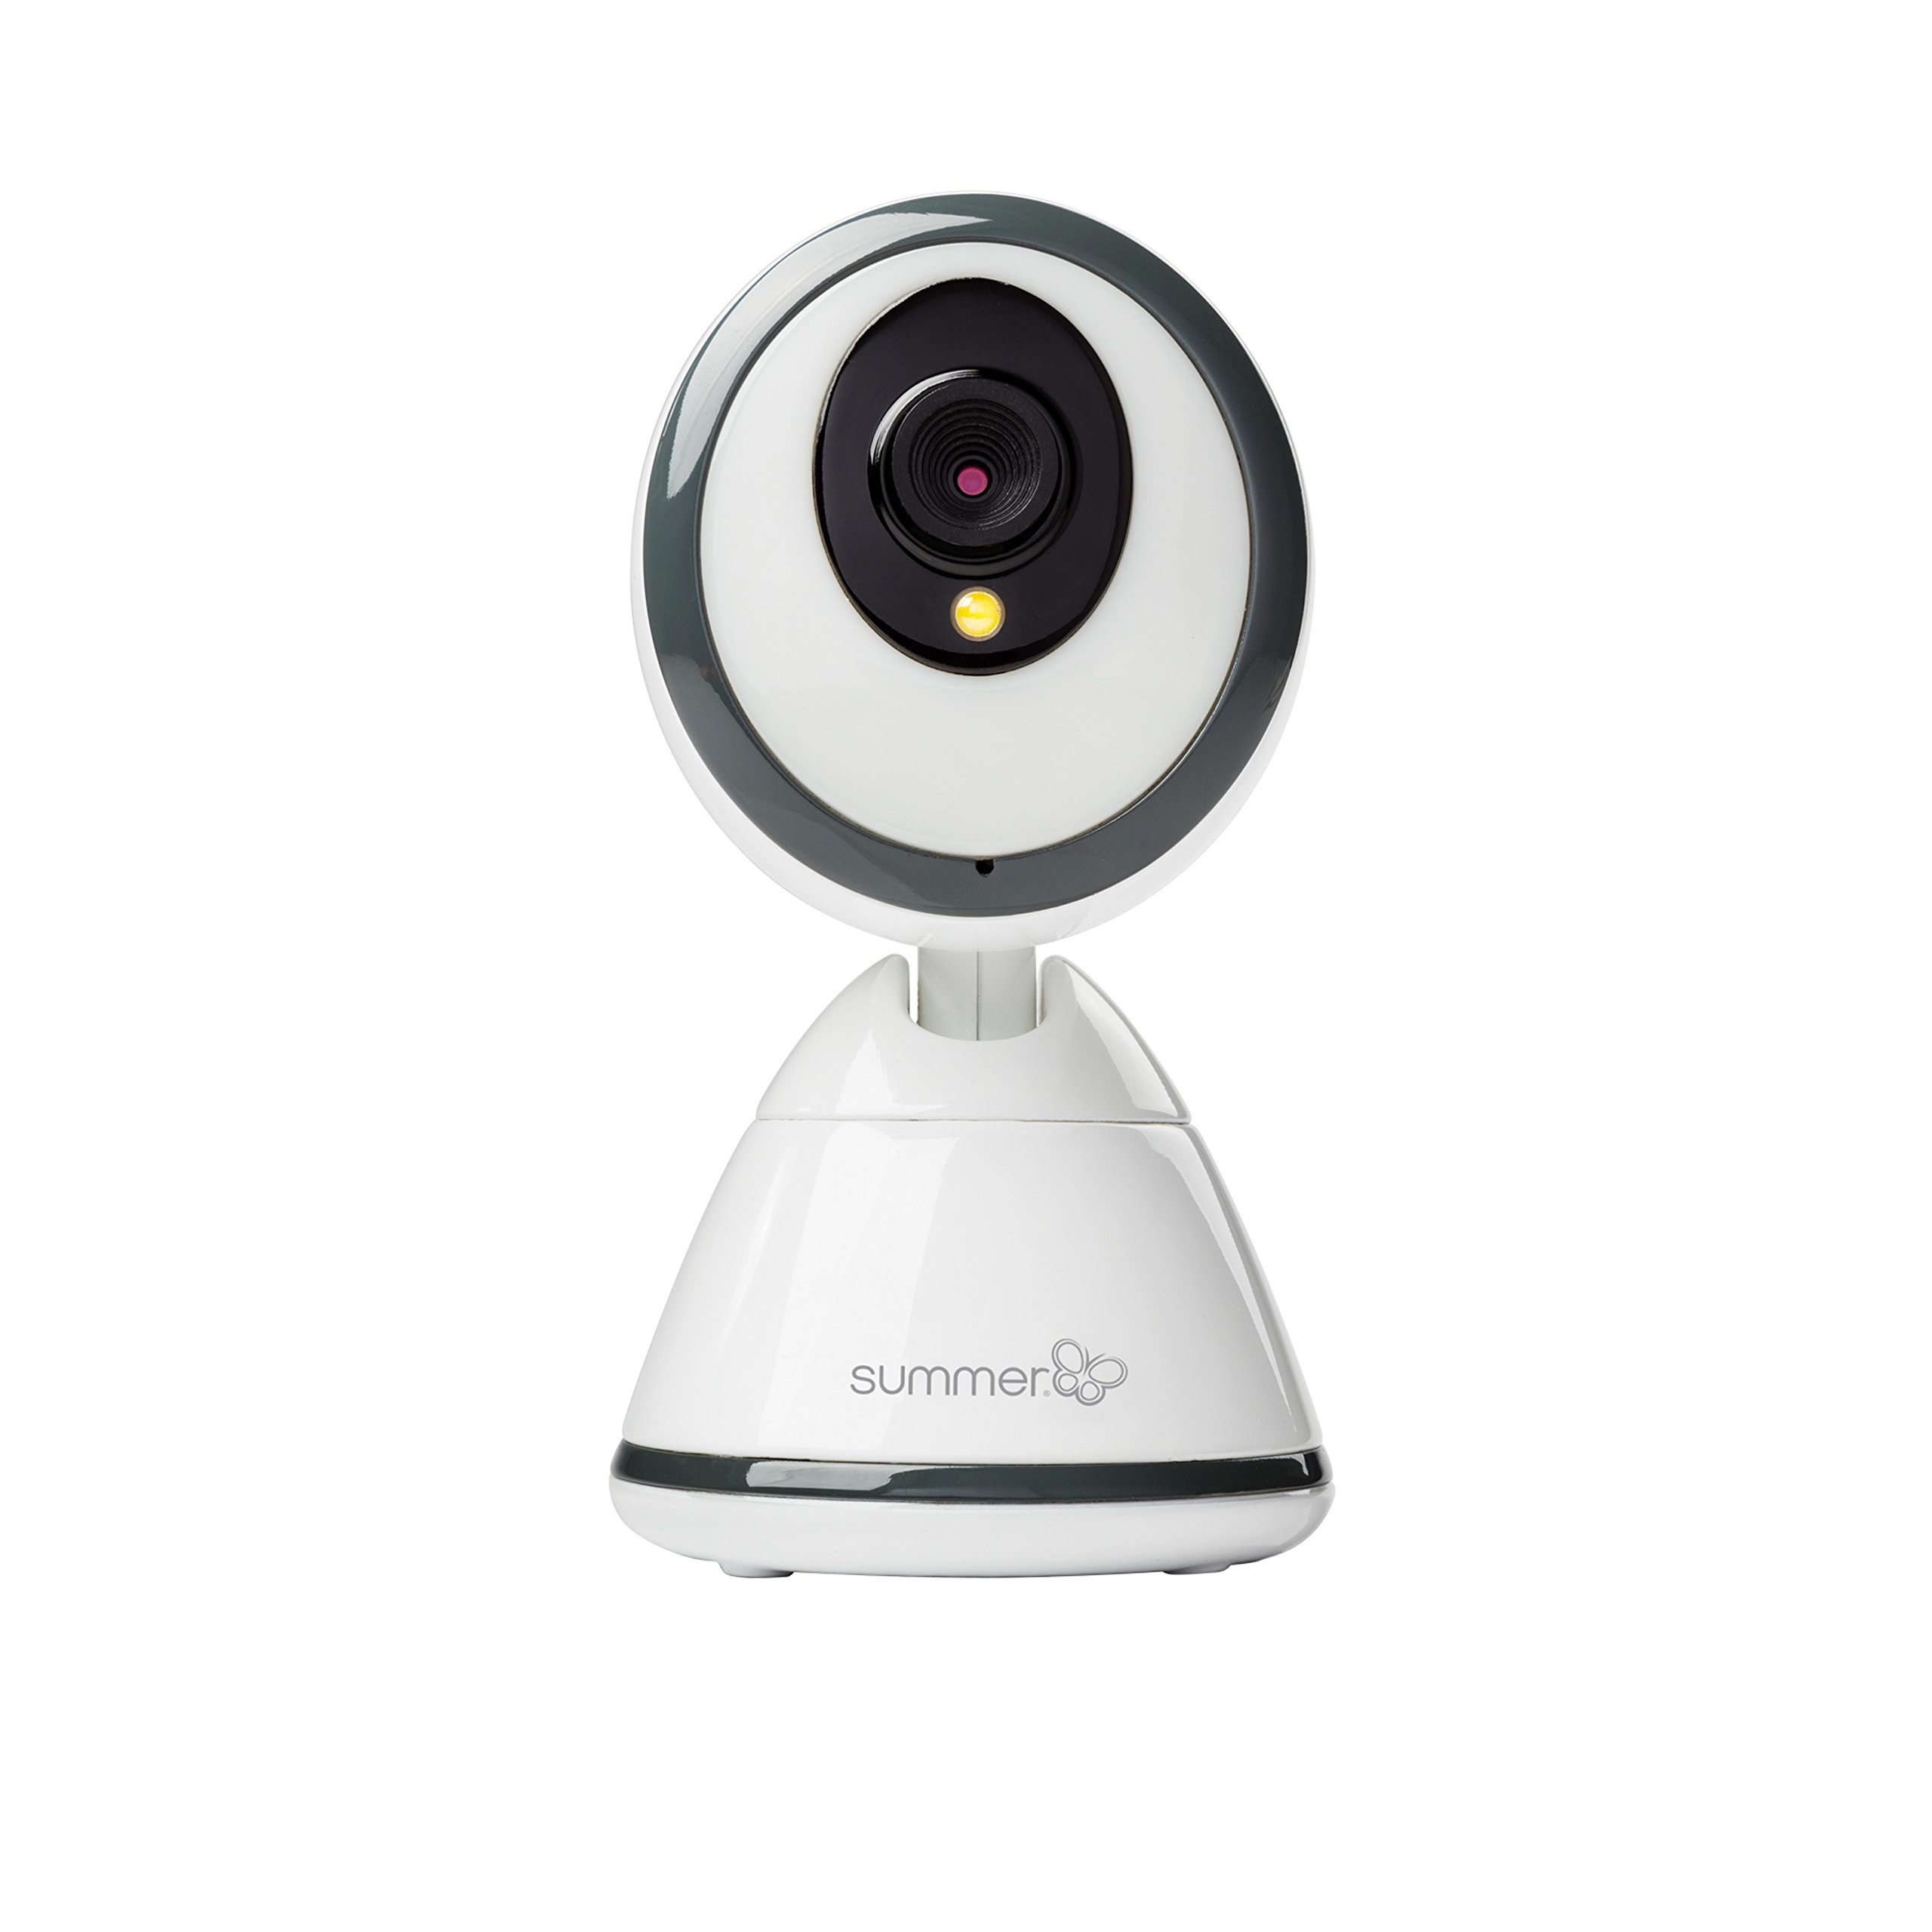 Summer Baby Pixel Extra Video Camera - Extra Baby Monitor Camera Allows Parents to Monitor Multiple Rooms and/or Children, Extra Video Baby Monitor is Perfect for Growing Families